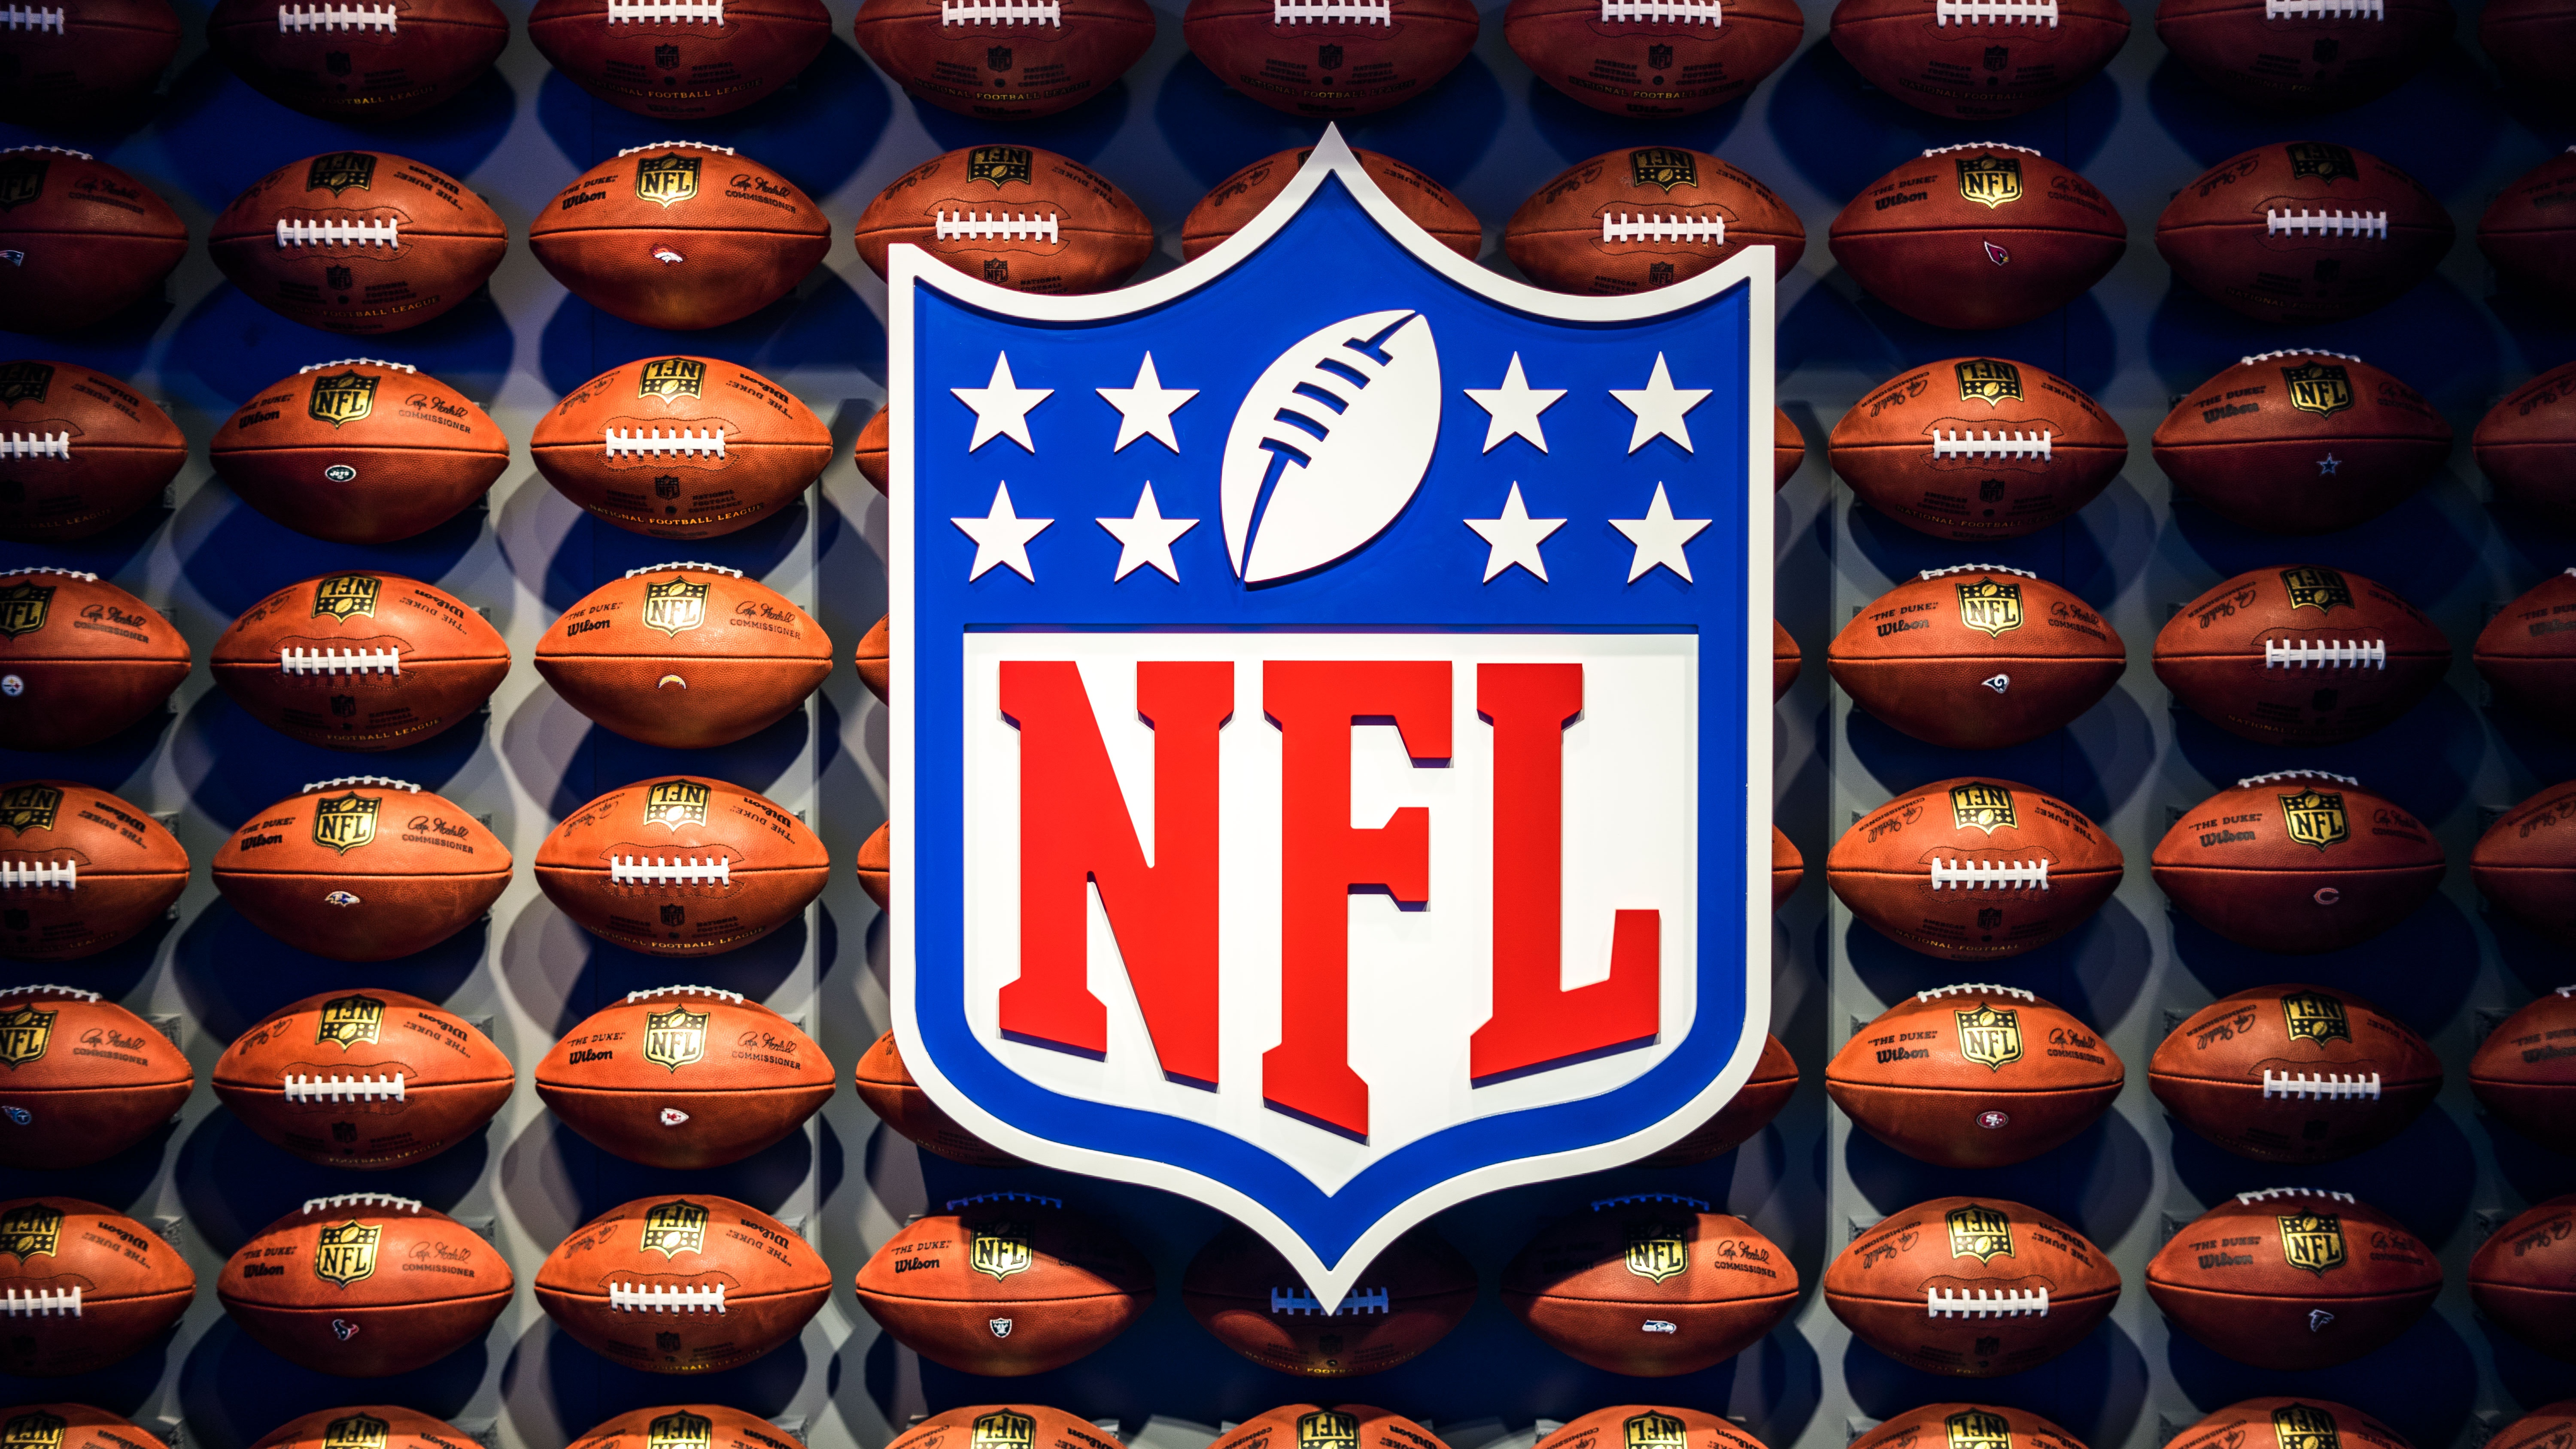 b707f7acb17 NFL SUNDAY TICKET Review 2019 — Is it Worth the Cost